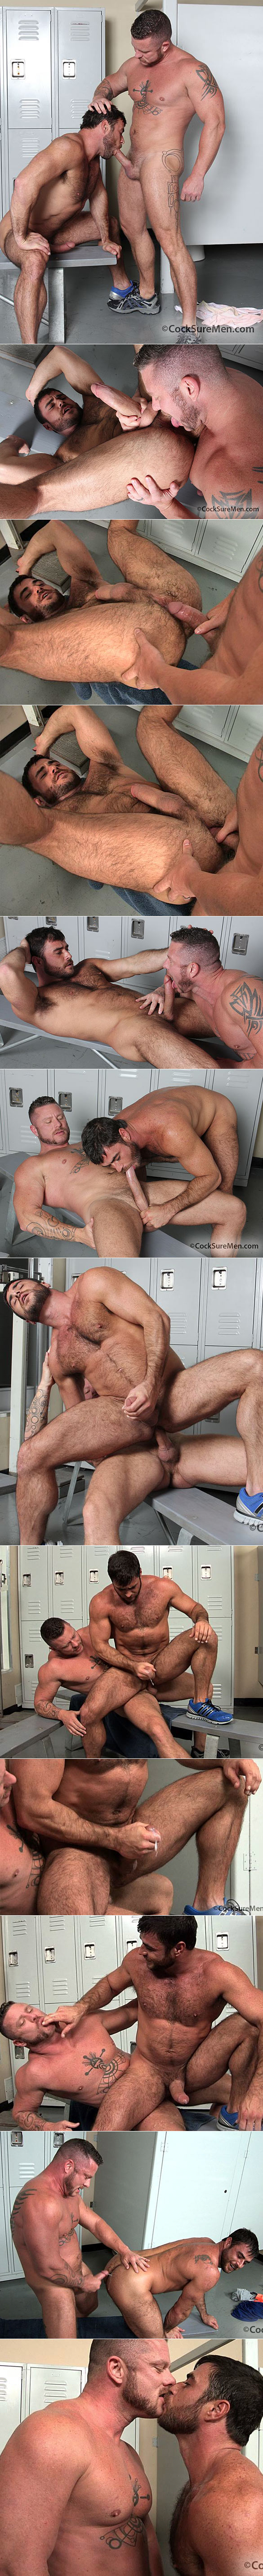 CocksureMen: Charlie Harding barebacks Mike Dozer